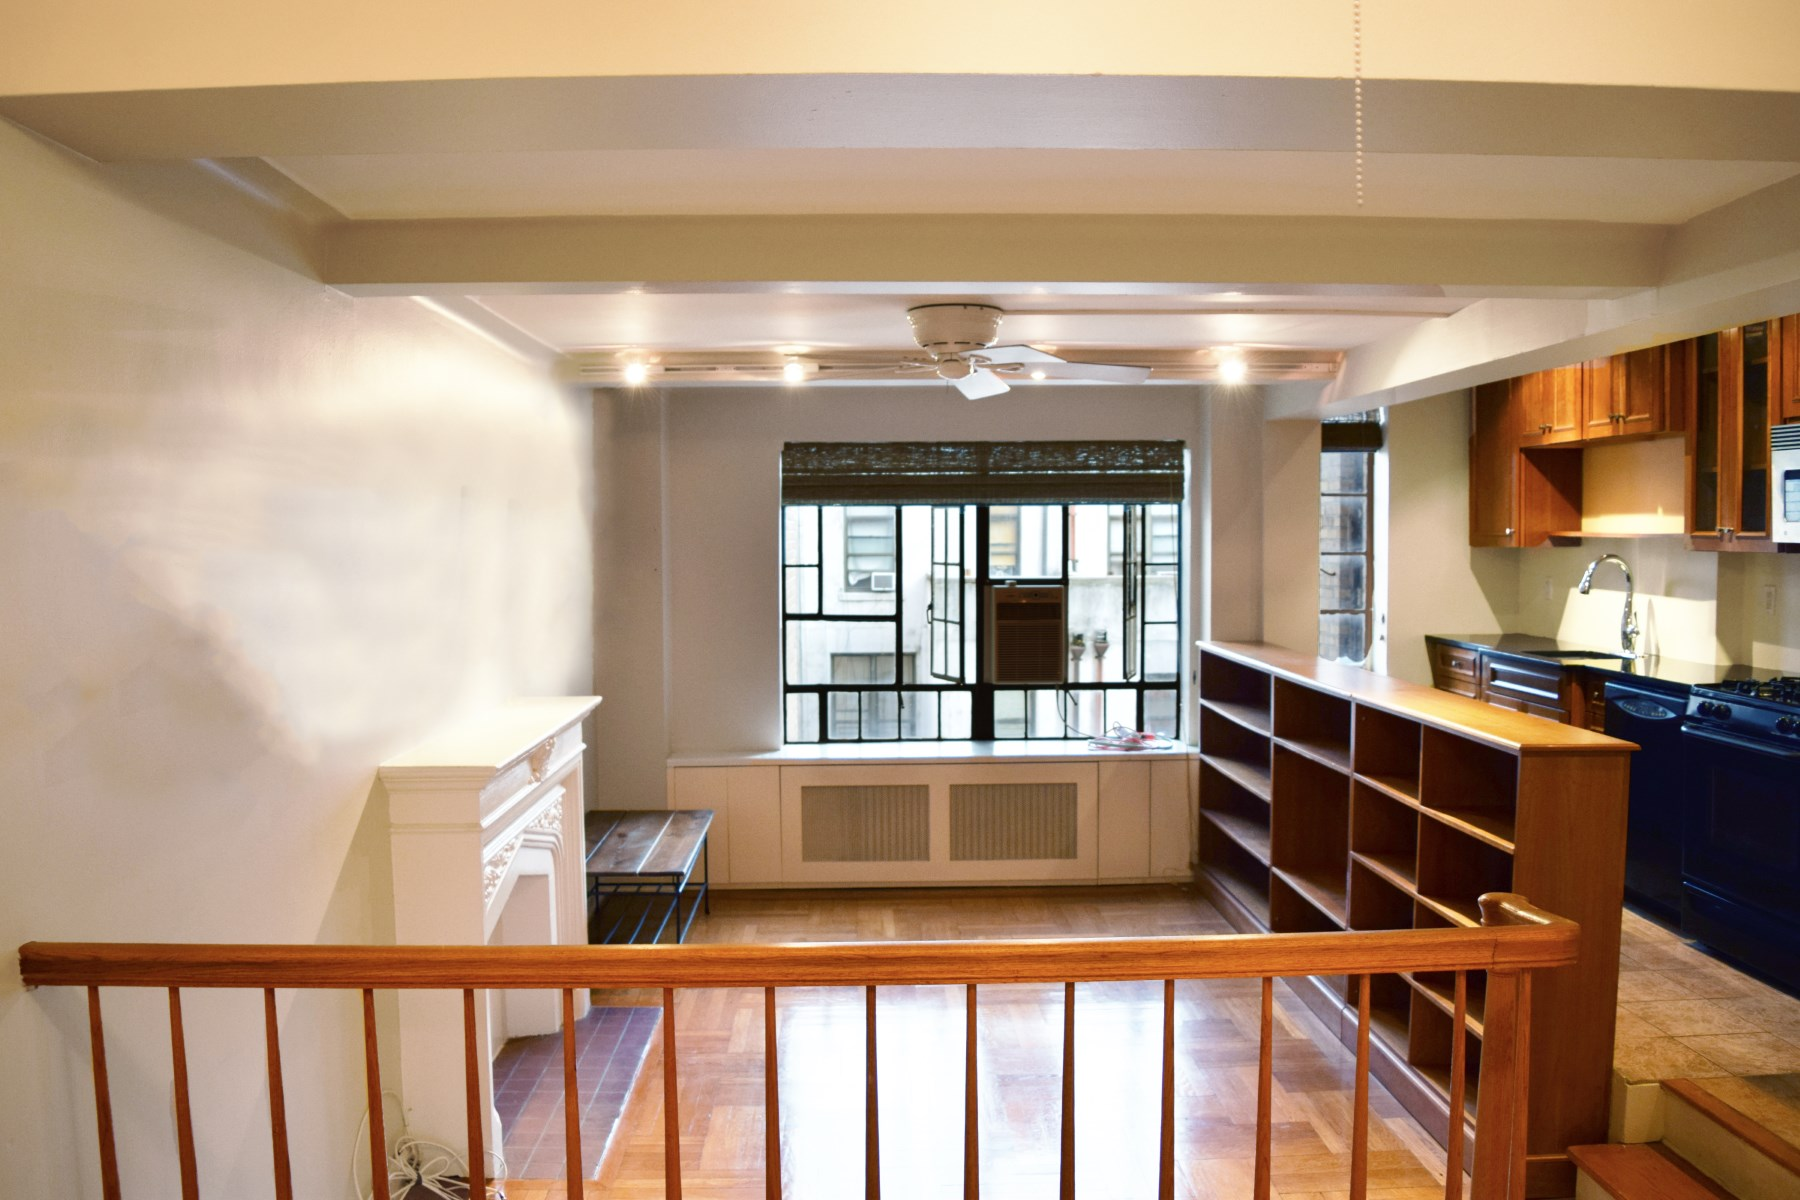 Co-op for Rent at 35 West 90th Street, Apt. 5H 35 West 90th Street Apt 5H Upper West Side, New York, New York, 10024 United States